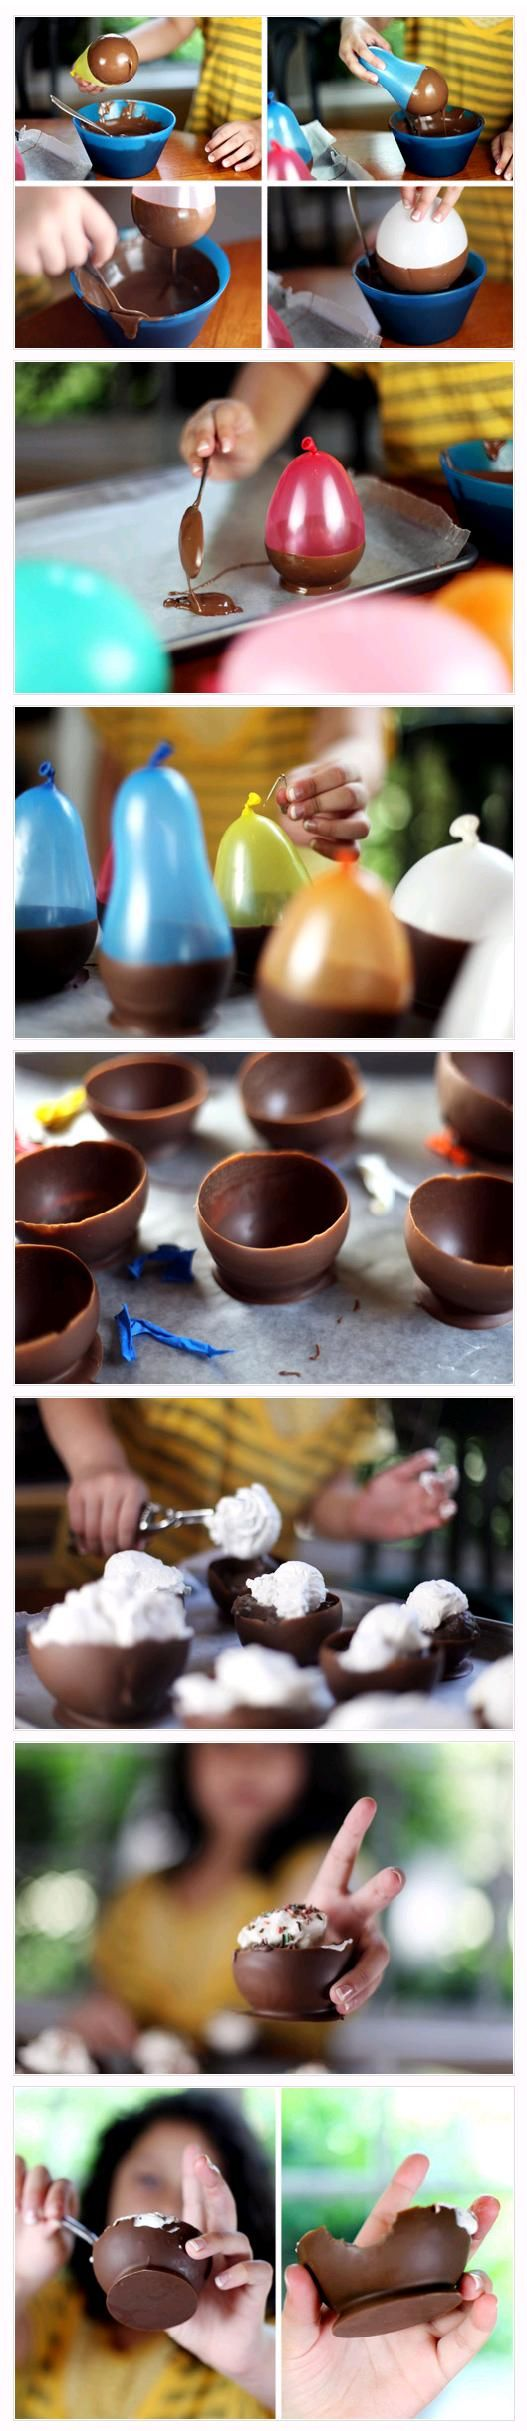 chocolate bowls this is awesome!